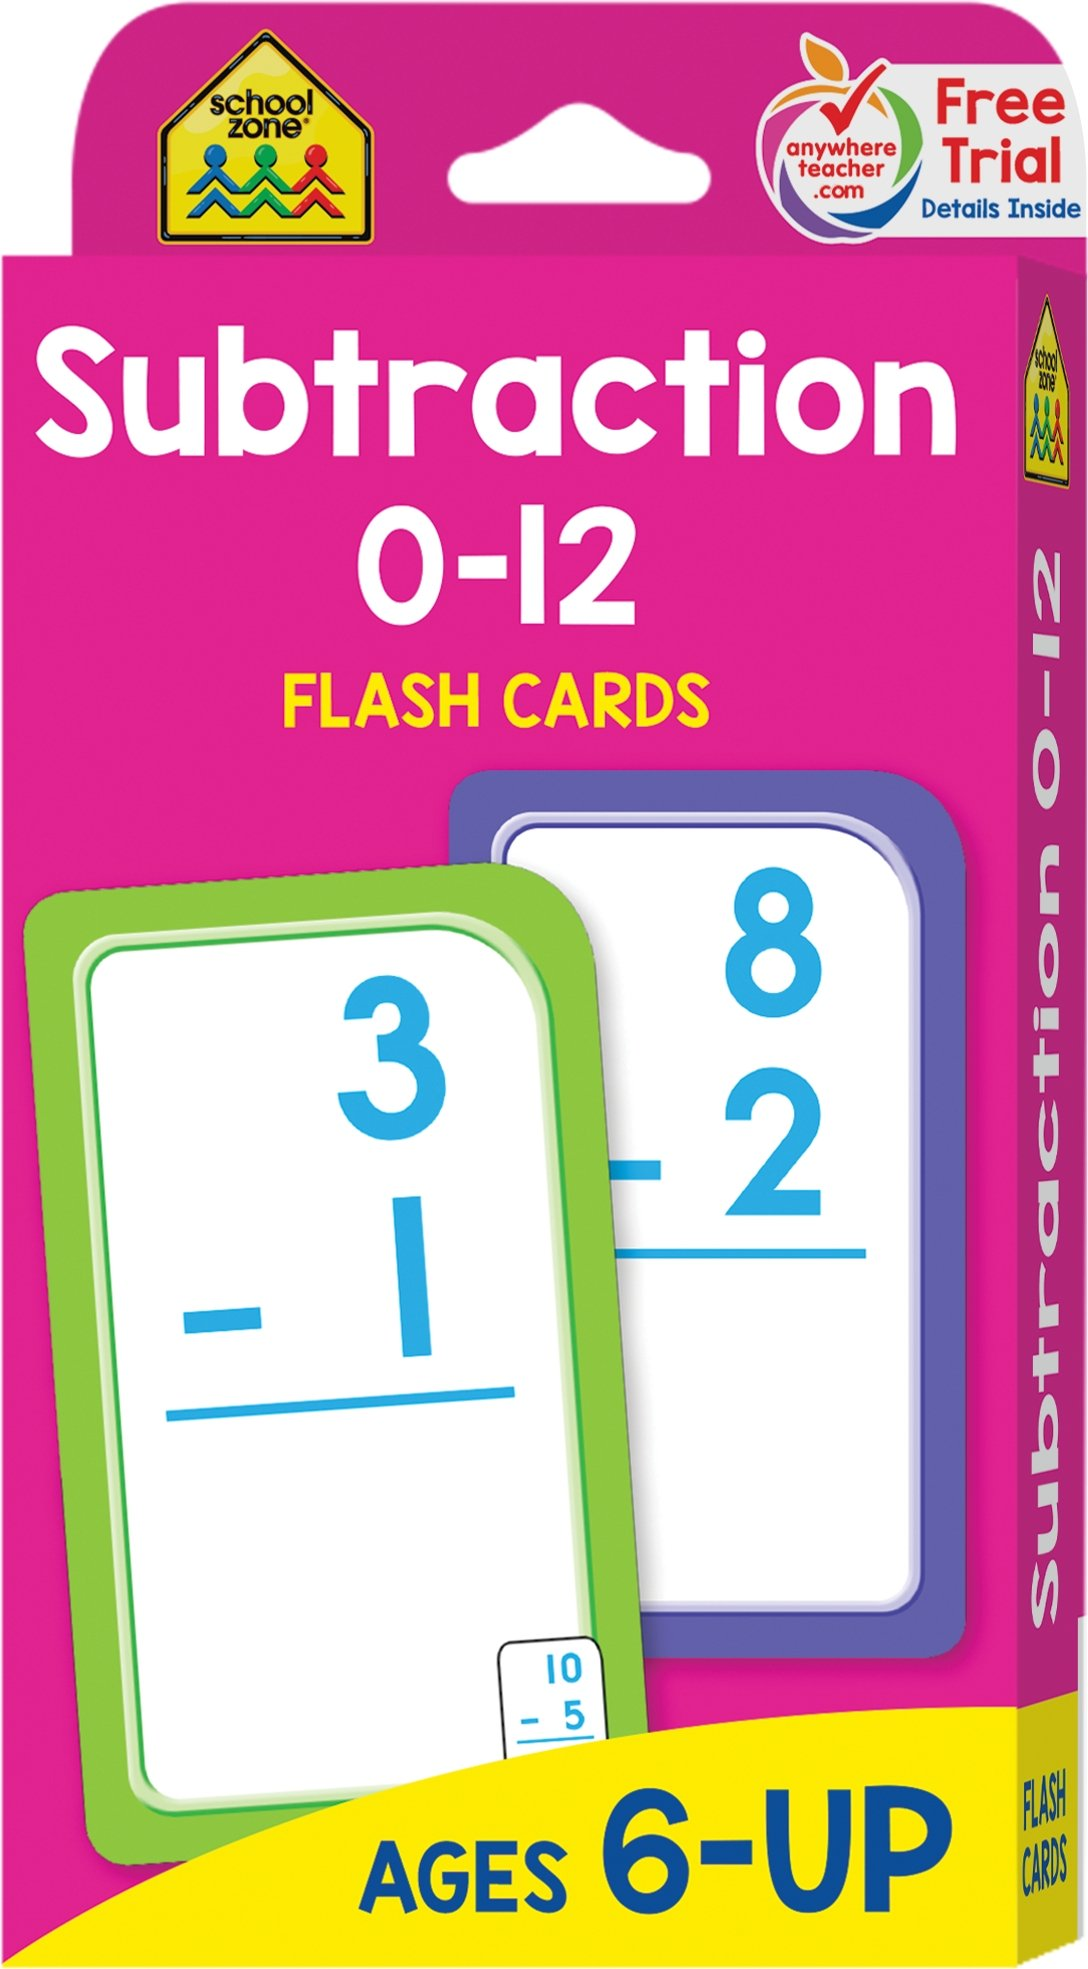 photo about Printable Addition Flash Cards 0-12 named Higher education Zone - Subtraction 0-12 Flash Playing cards - Ages 6 and Up